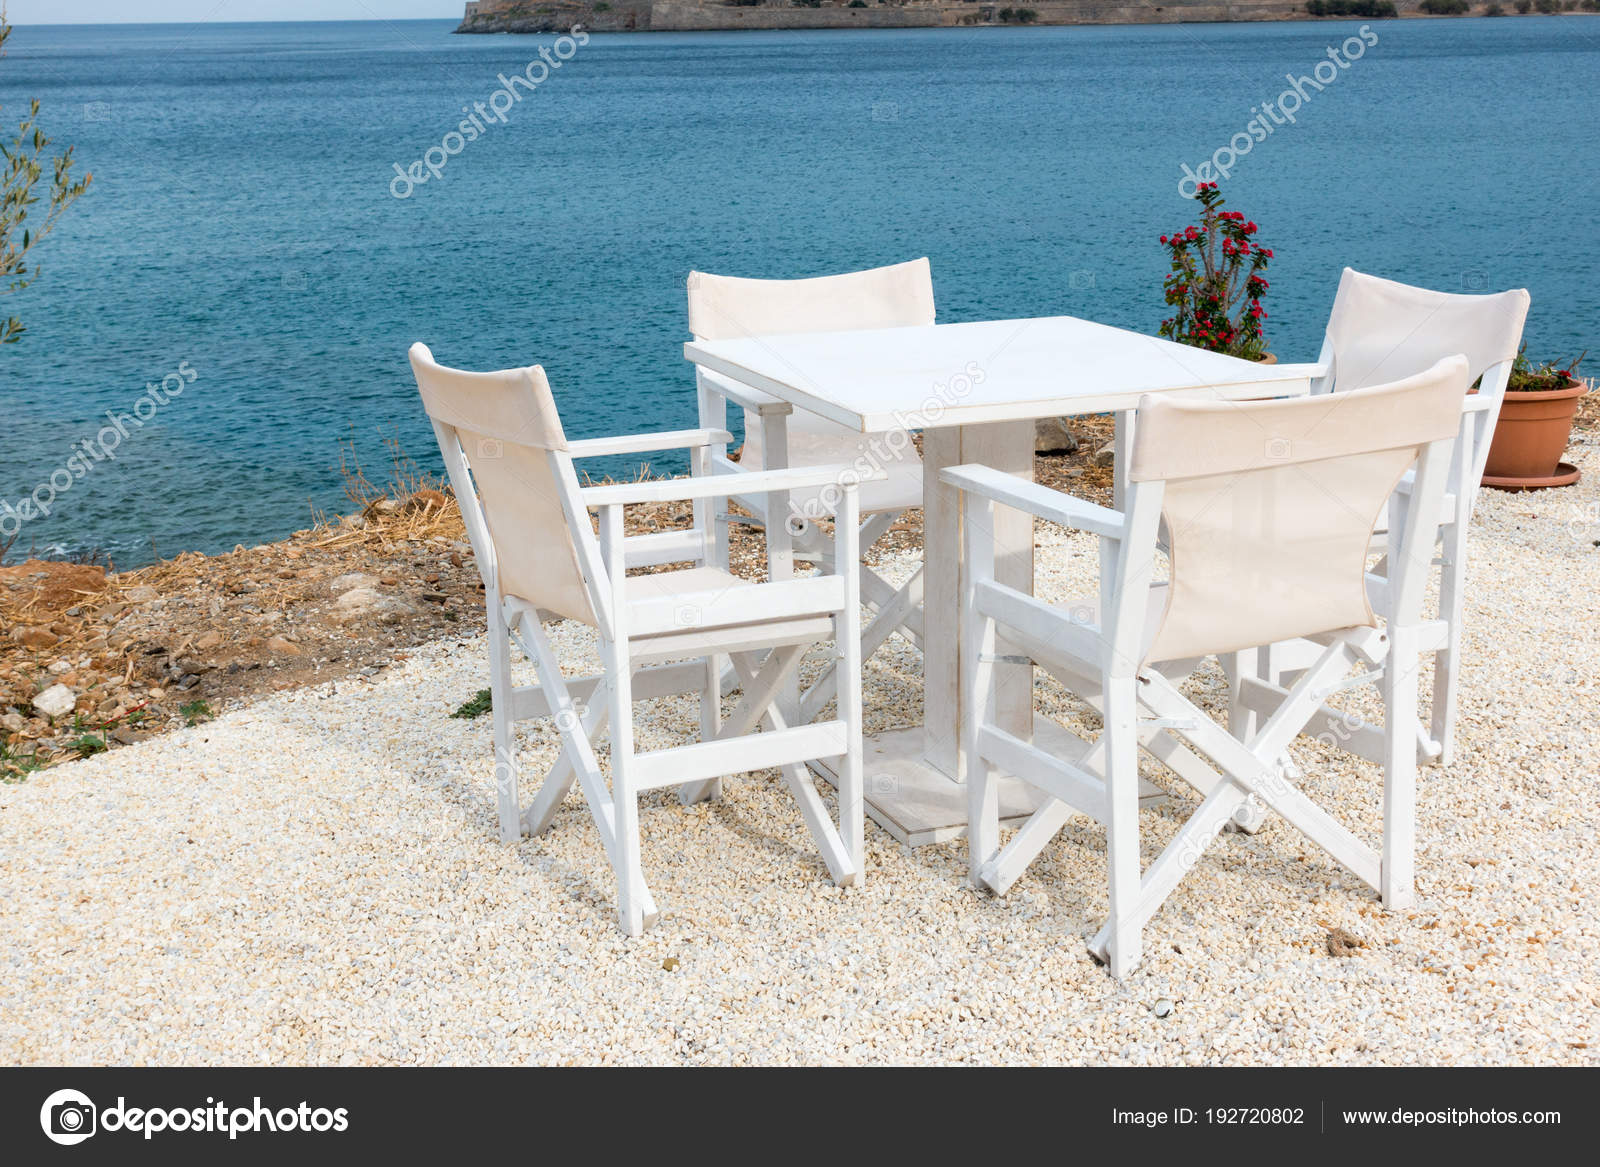 Chaise Restaurant Bois Tables Bois Vides Chaise Restaurant Plein Air Bord Mer